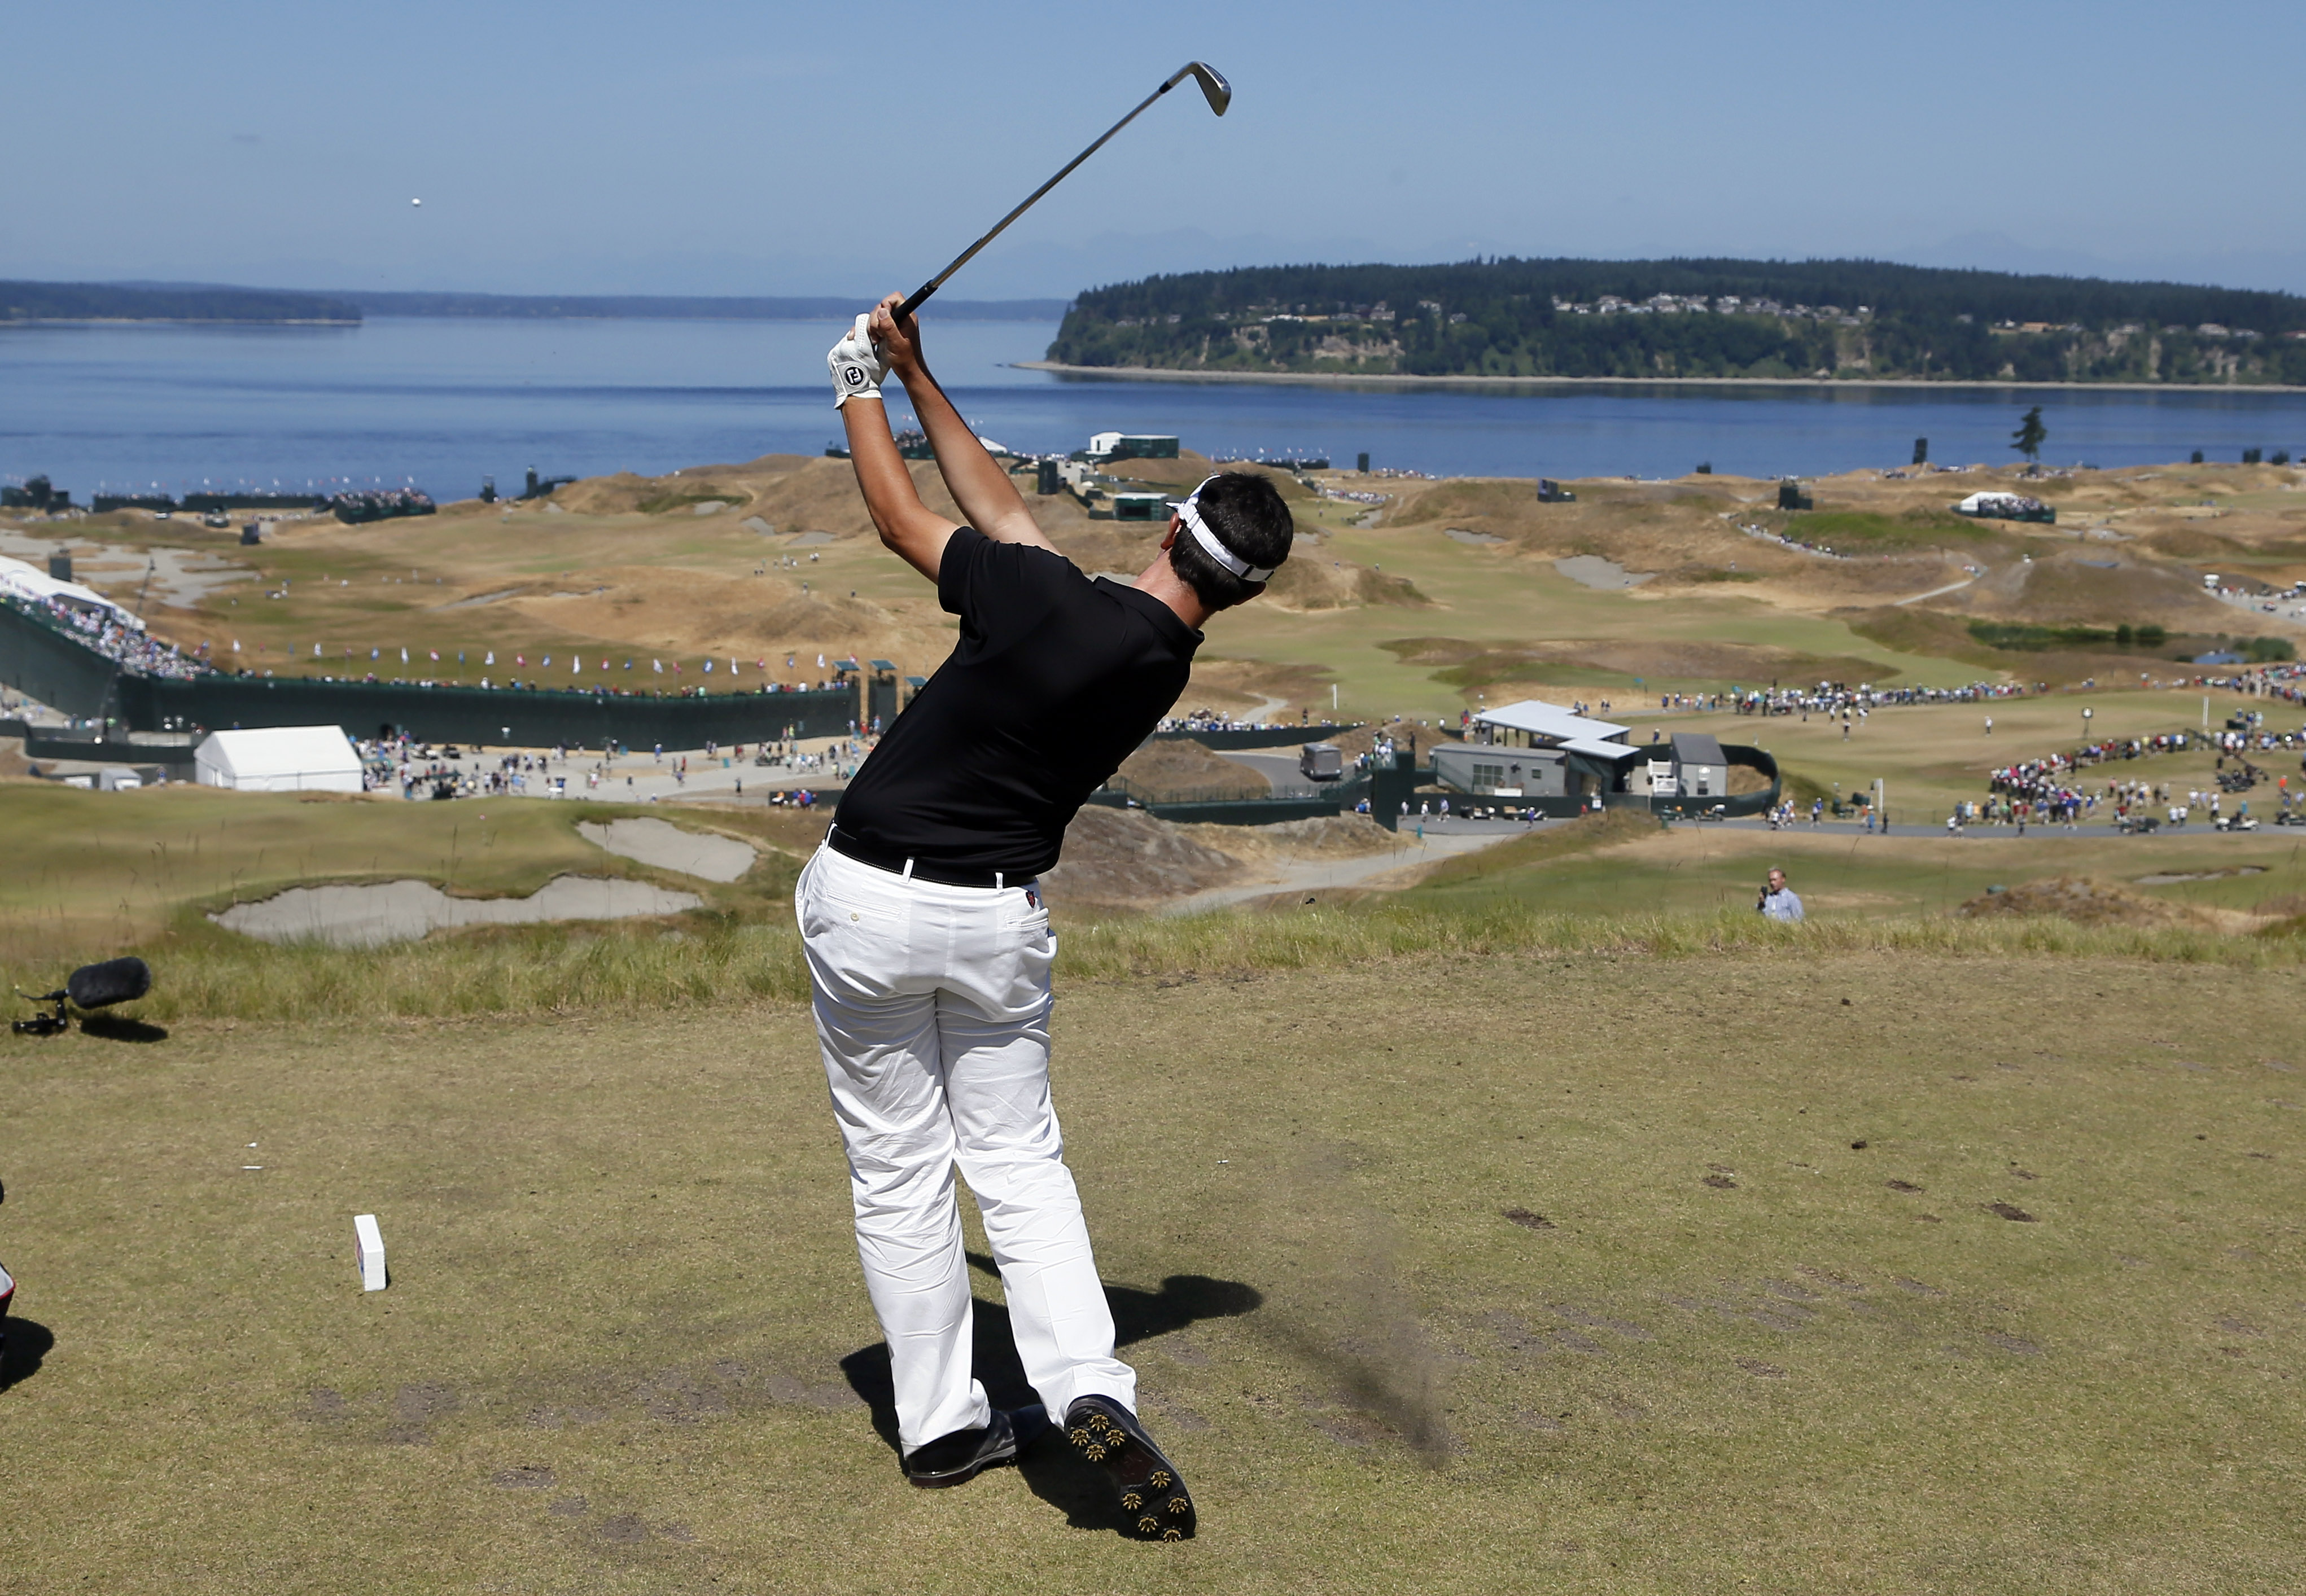 Beau Hossler, amateur, watches his tee shot on the ninth hole during a practice round for the U.S. Open golf tournament at Chambers Bay on Wednesday, June 17, 2015 in University Place, Wash. (AP Photo/Matt York)